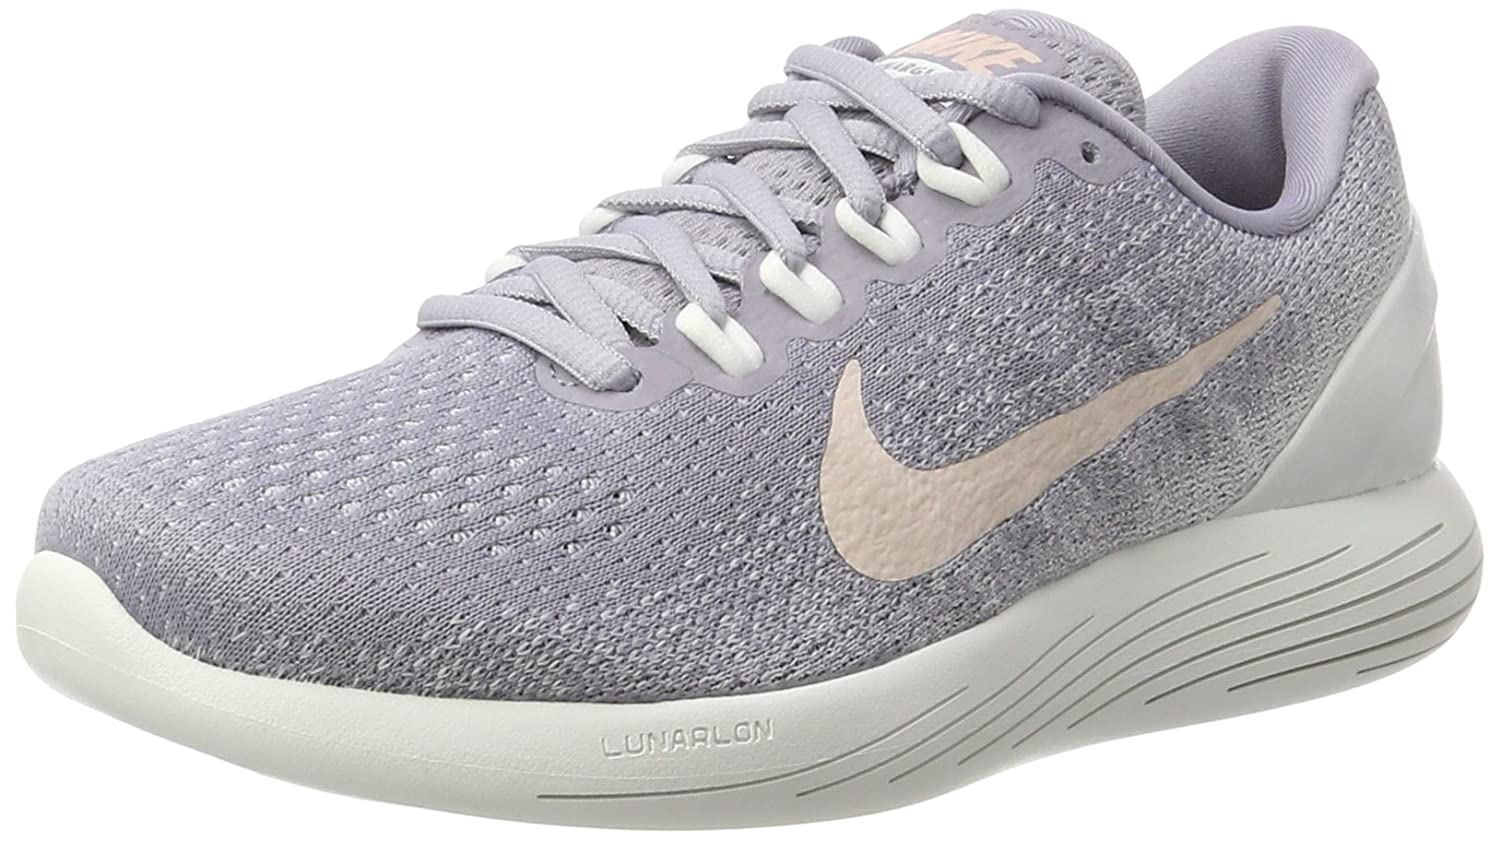 NIKE Women's Lunarglide 9 Running Shoe B002EAFO8W 6 B(M) US|Provence Purple/Sunset Tint